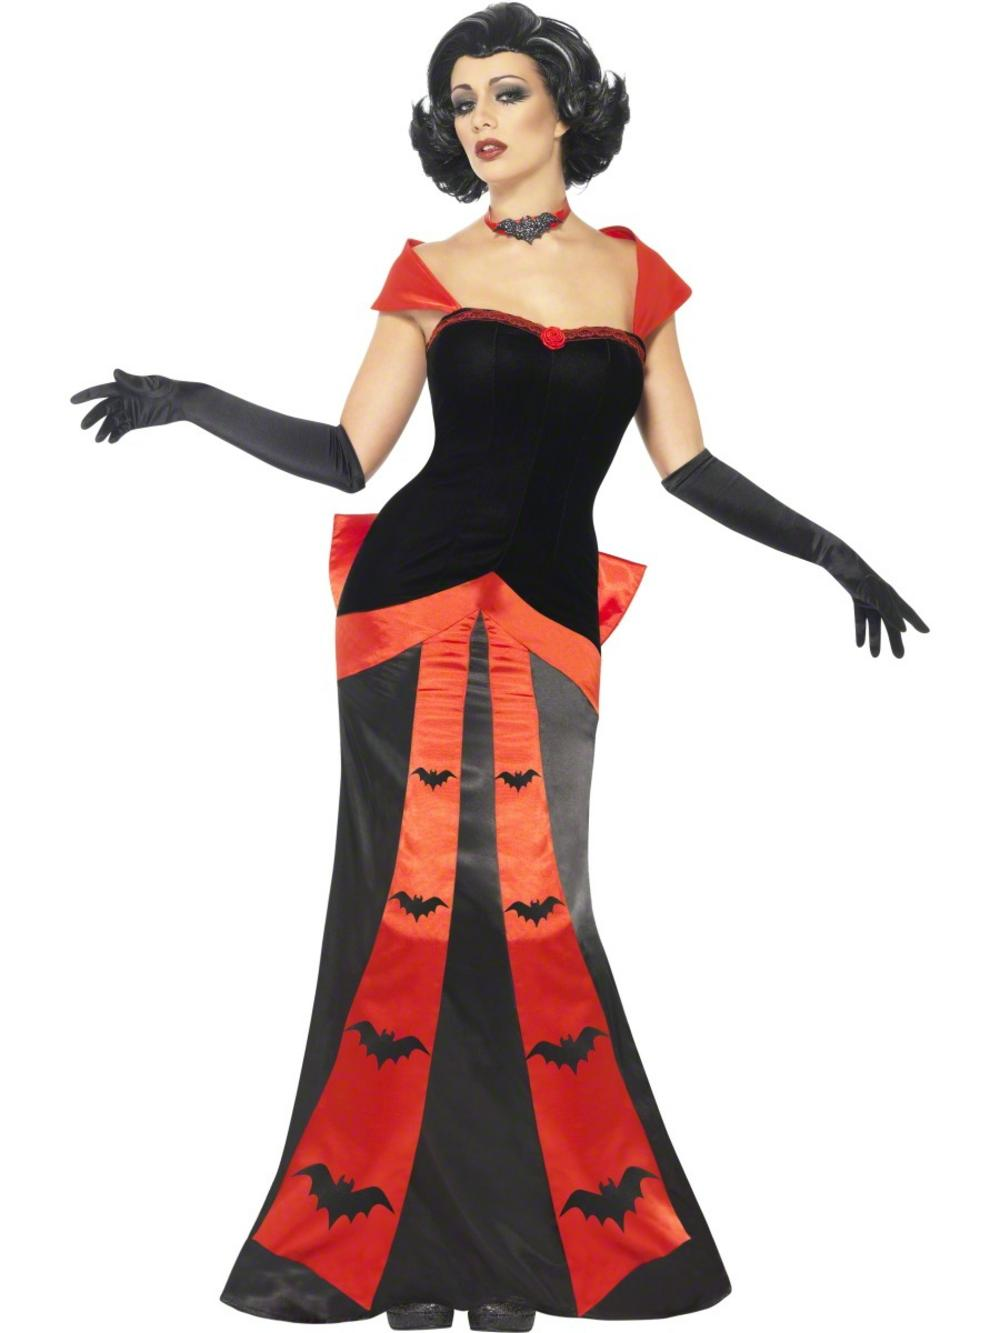 Glam Vampiress Costume